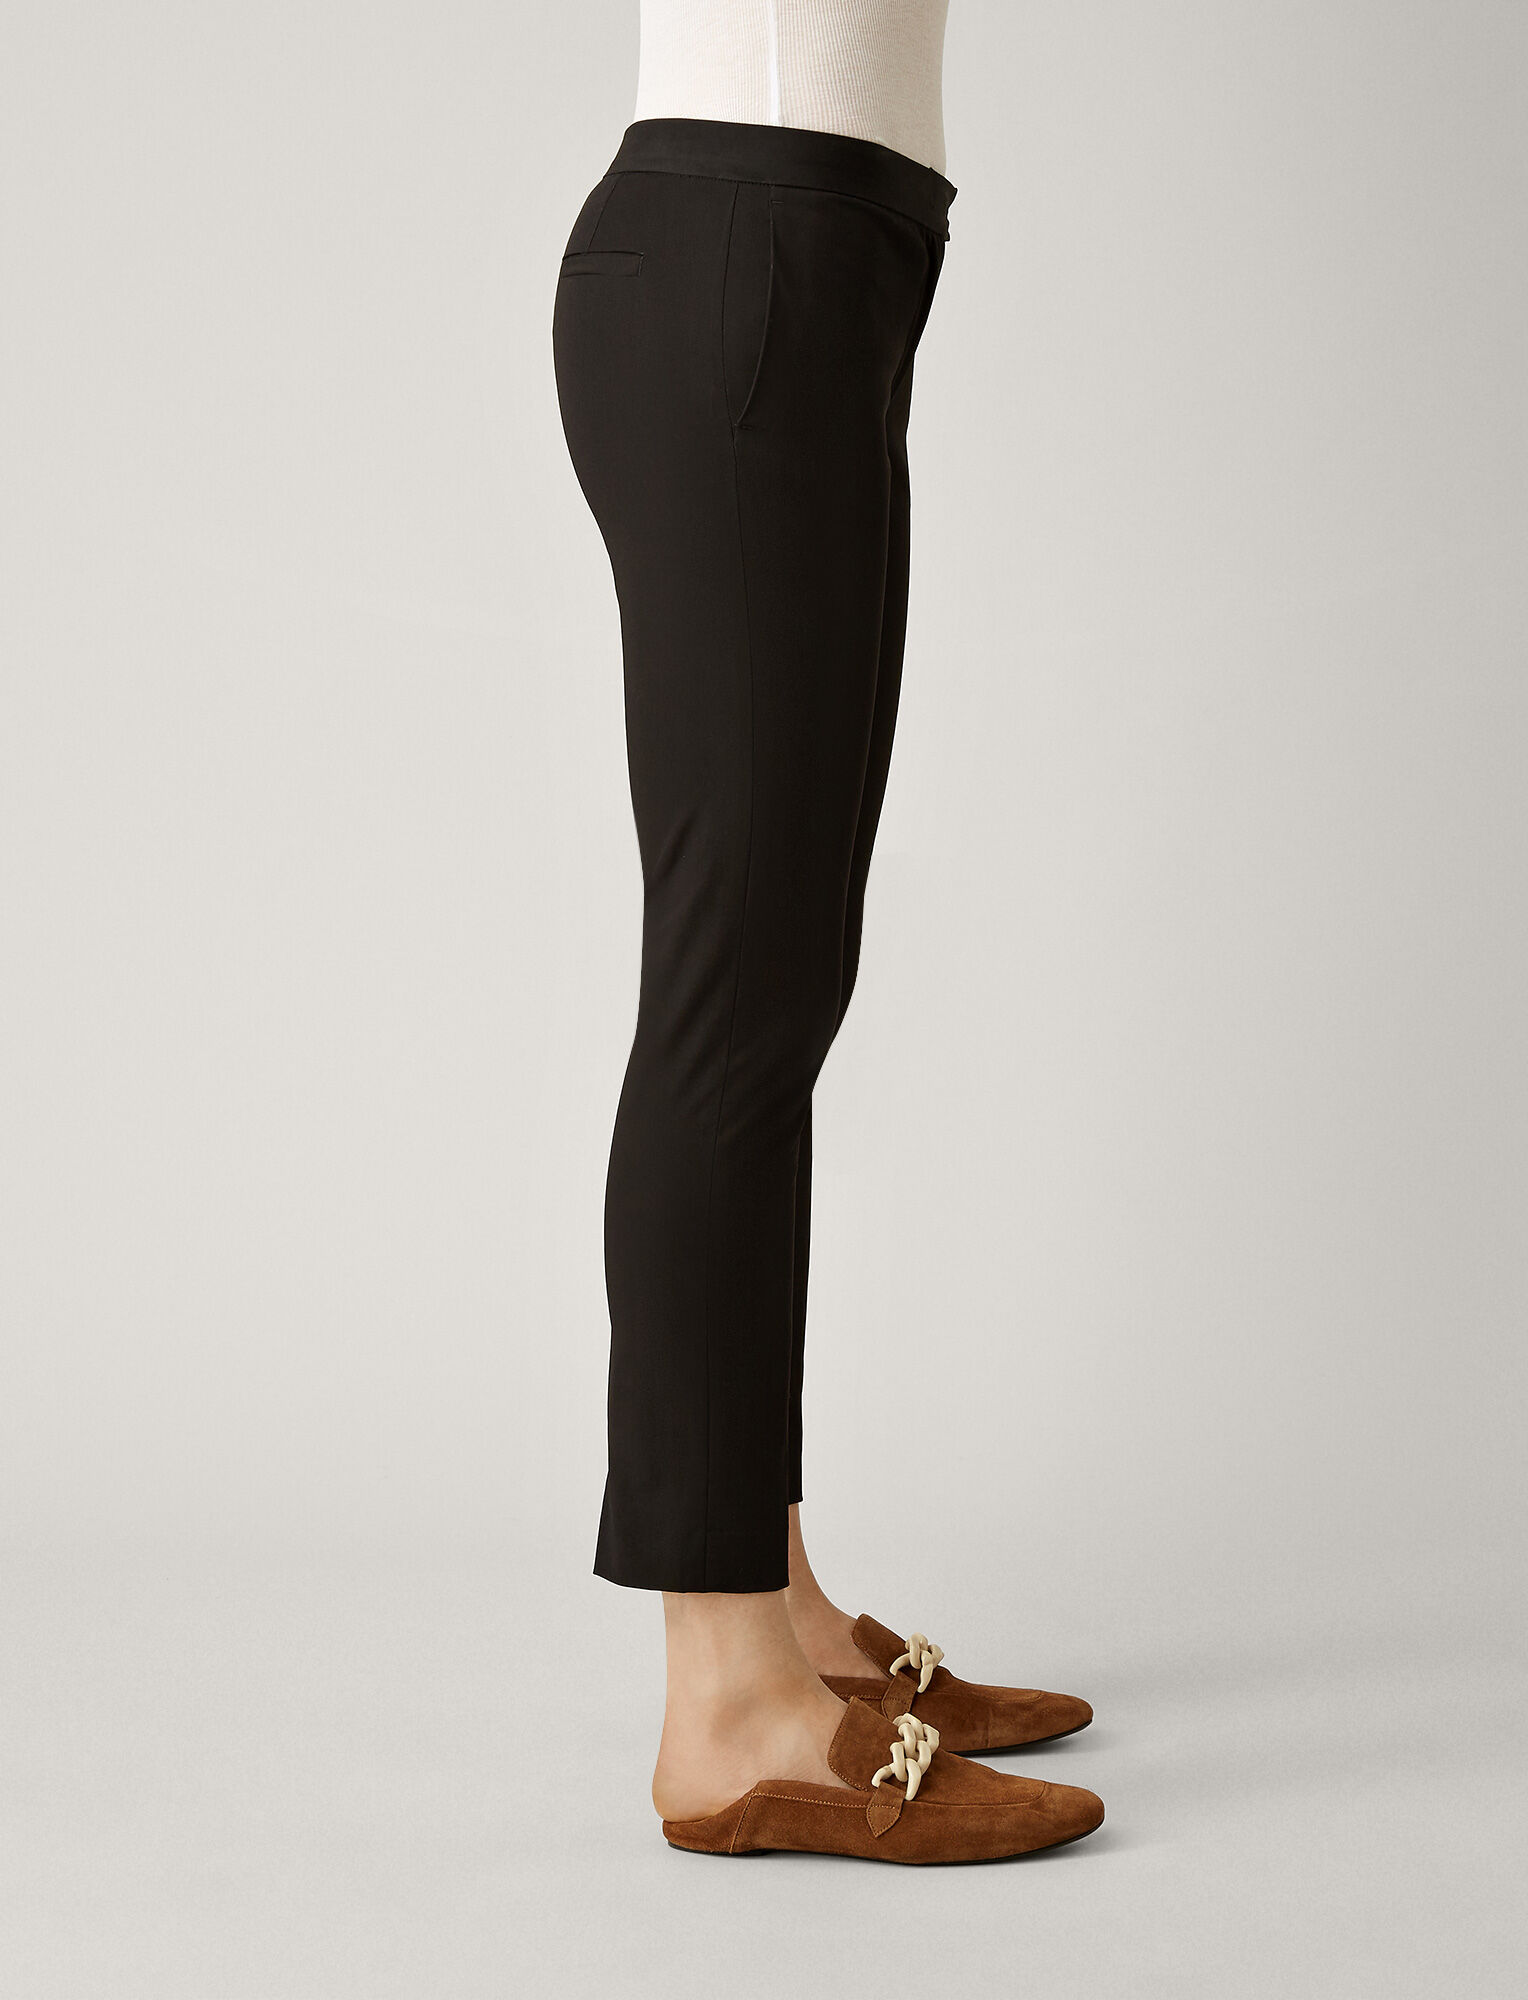 Joseph, Finley Polish Cotton Trousers, in BLACK